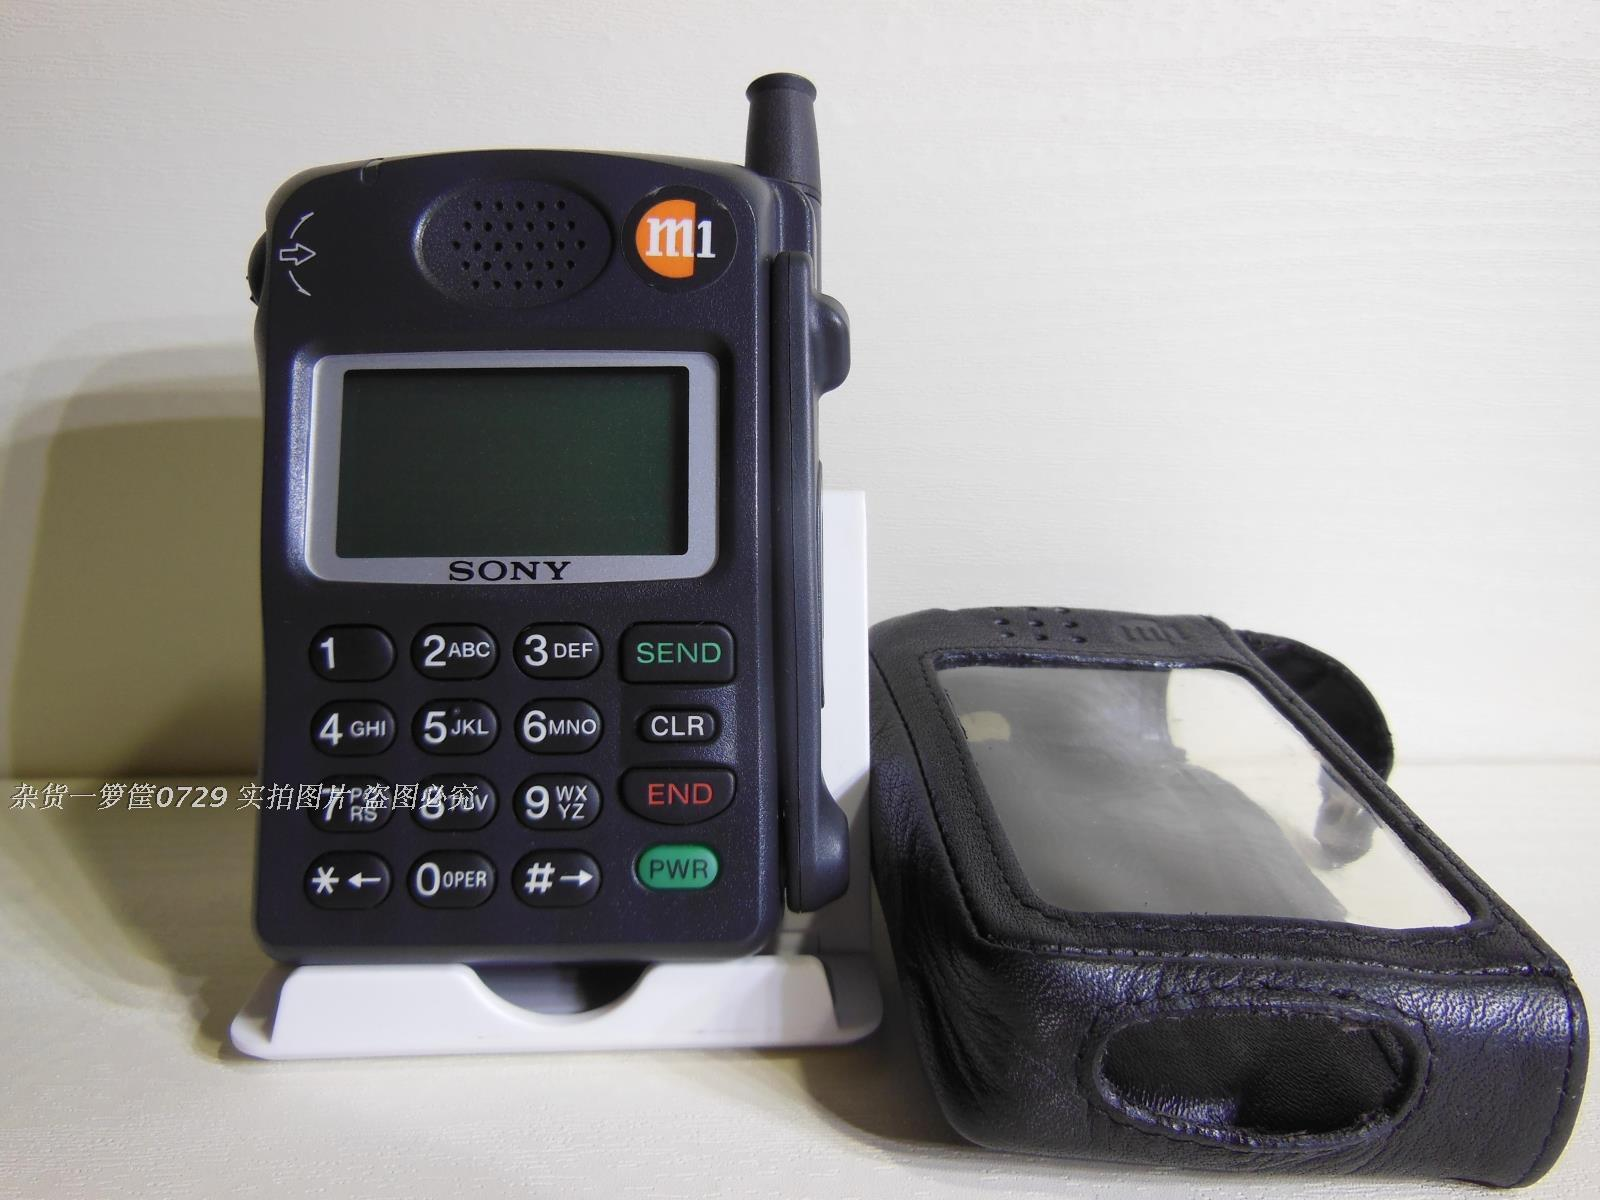 Used collection SONY Sony CM-Z100 brick machine Big Brother old phone  antique mobile phone simulator